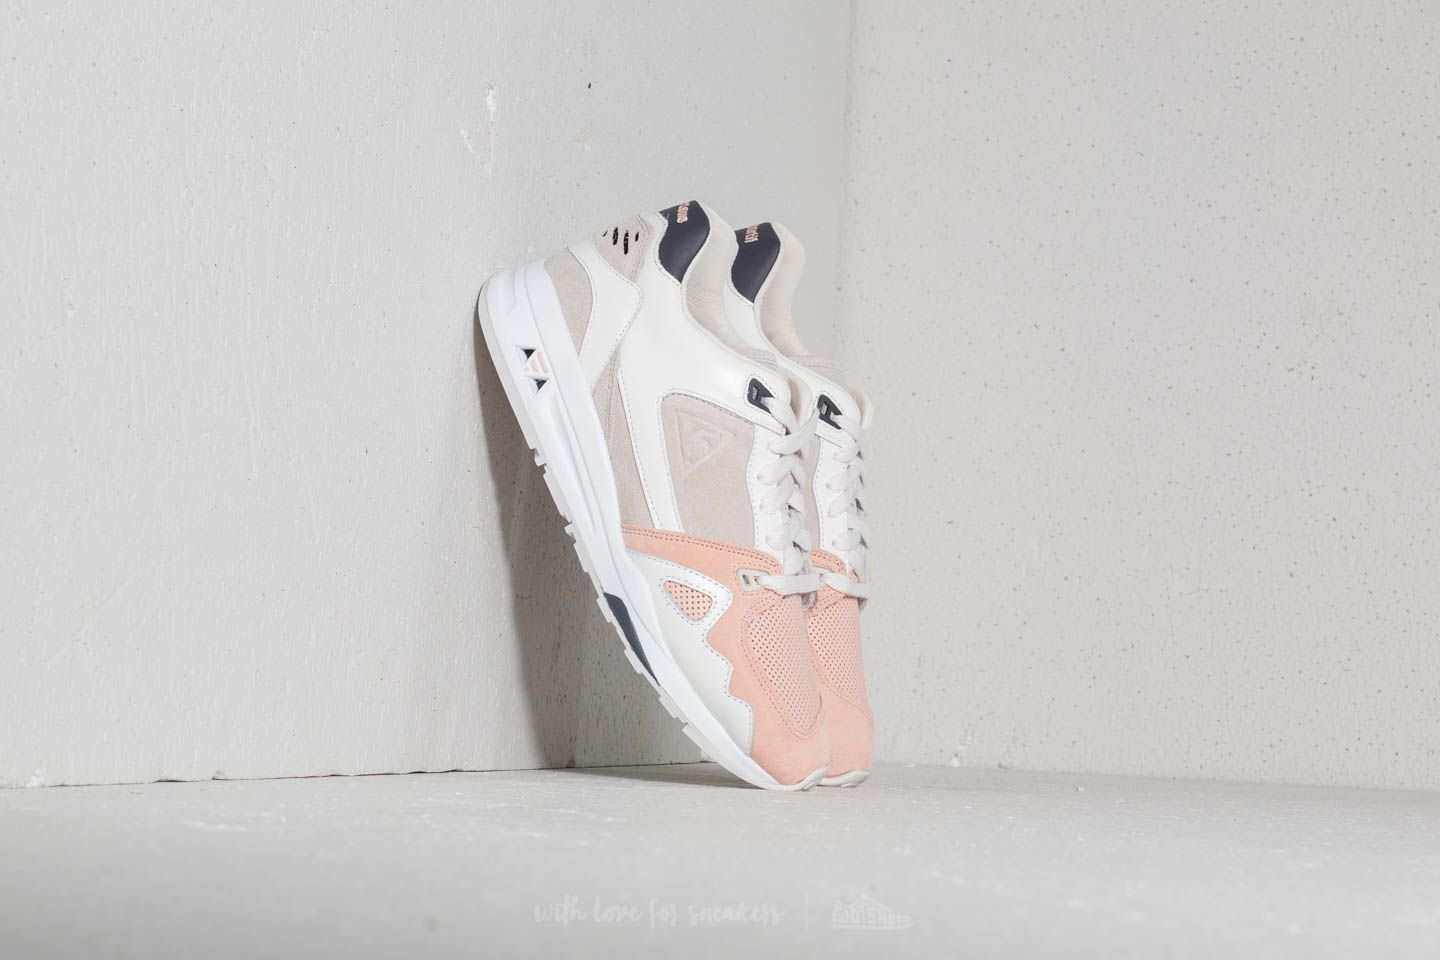 le coq sportif x Highs And Lows LCS R1000